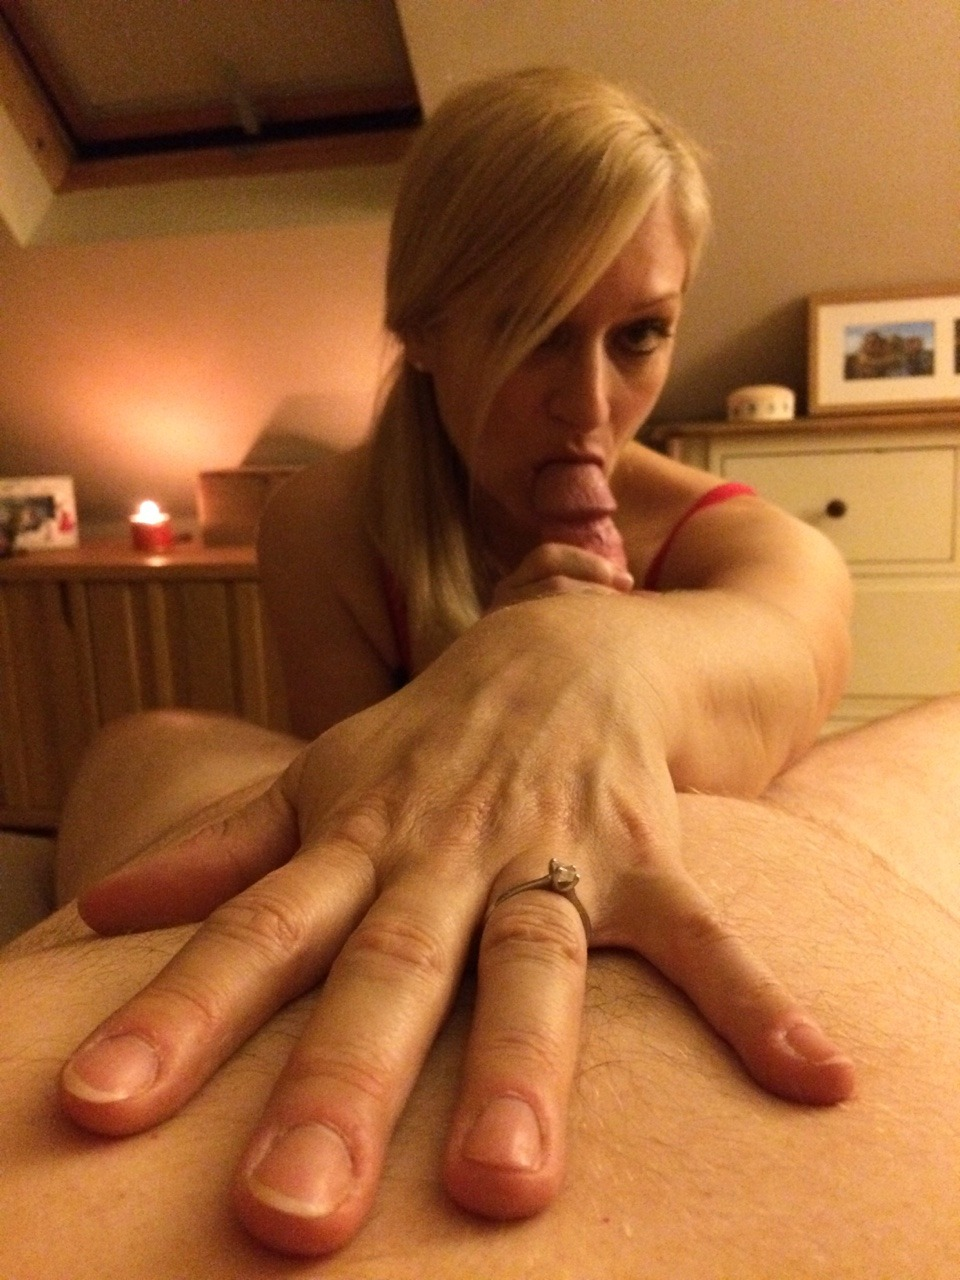 she makes him watch her fingering herself